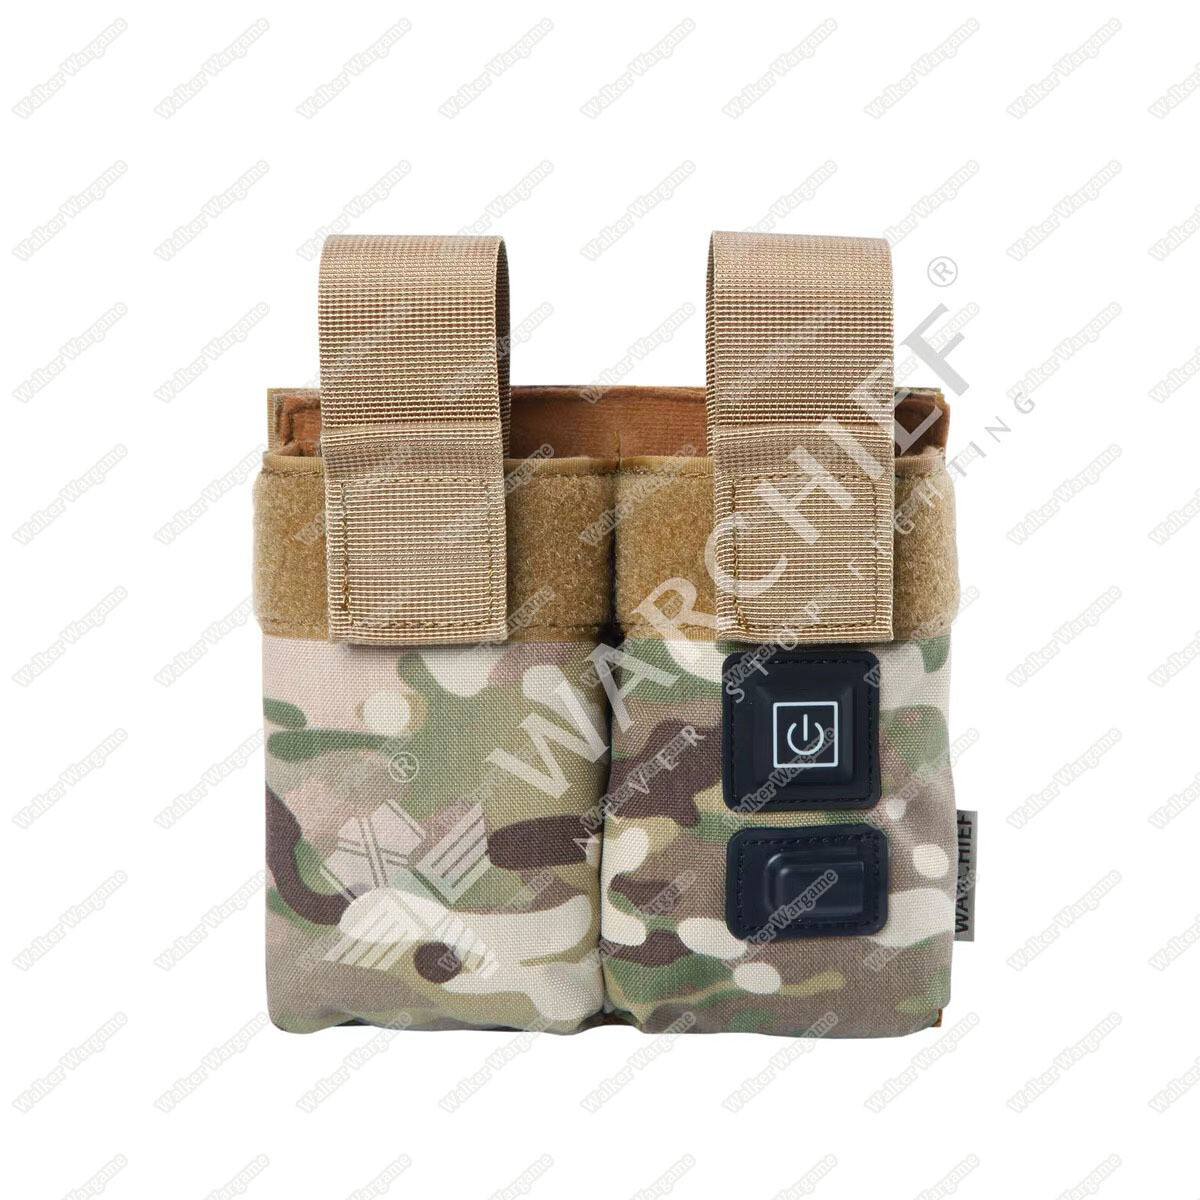 Warchief Gas Mag Warmer Preheat Pouch - Double Rifle M4 Mag Pouch